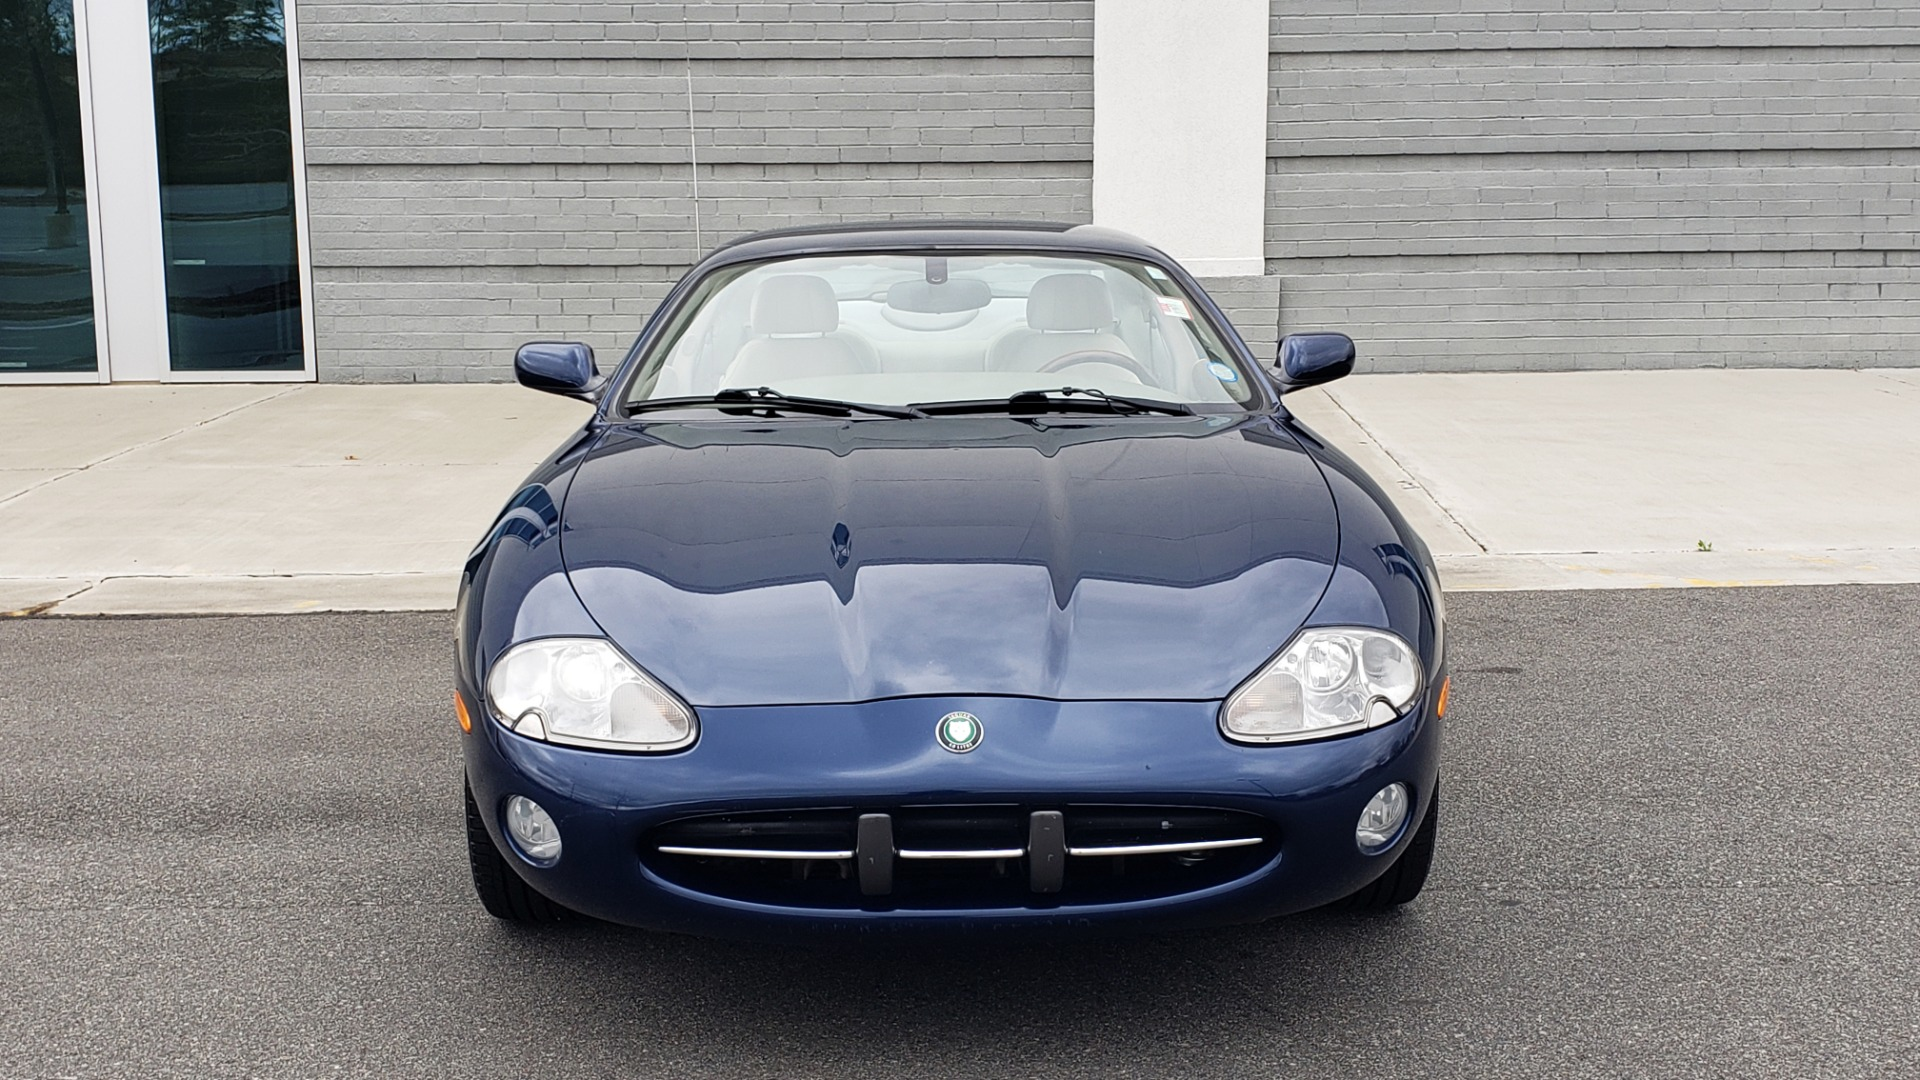 Used 2002 Jaguar XK8 COUPE / 4.0L V8 / 5-SPD AUTO / ALPINE SOUND / 18IN CHROME WHEELS for sale $16,450 at Formula Imports in Charlotte NC 28227 24